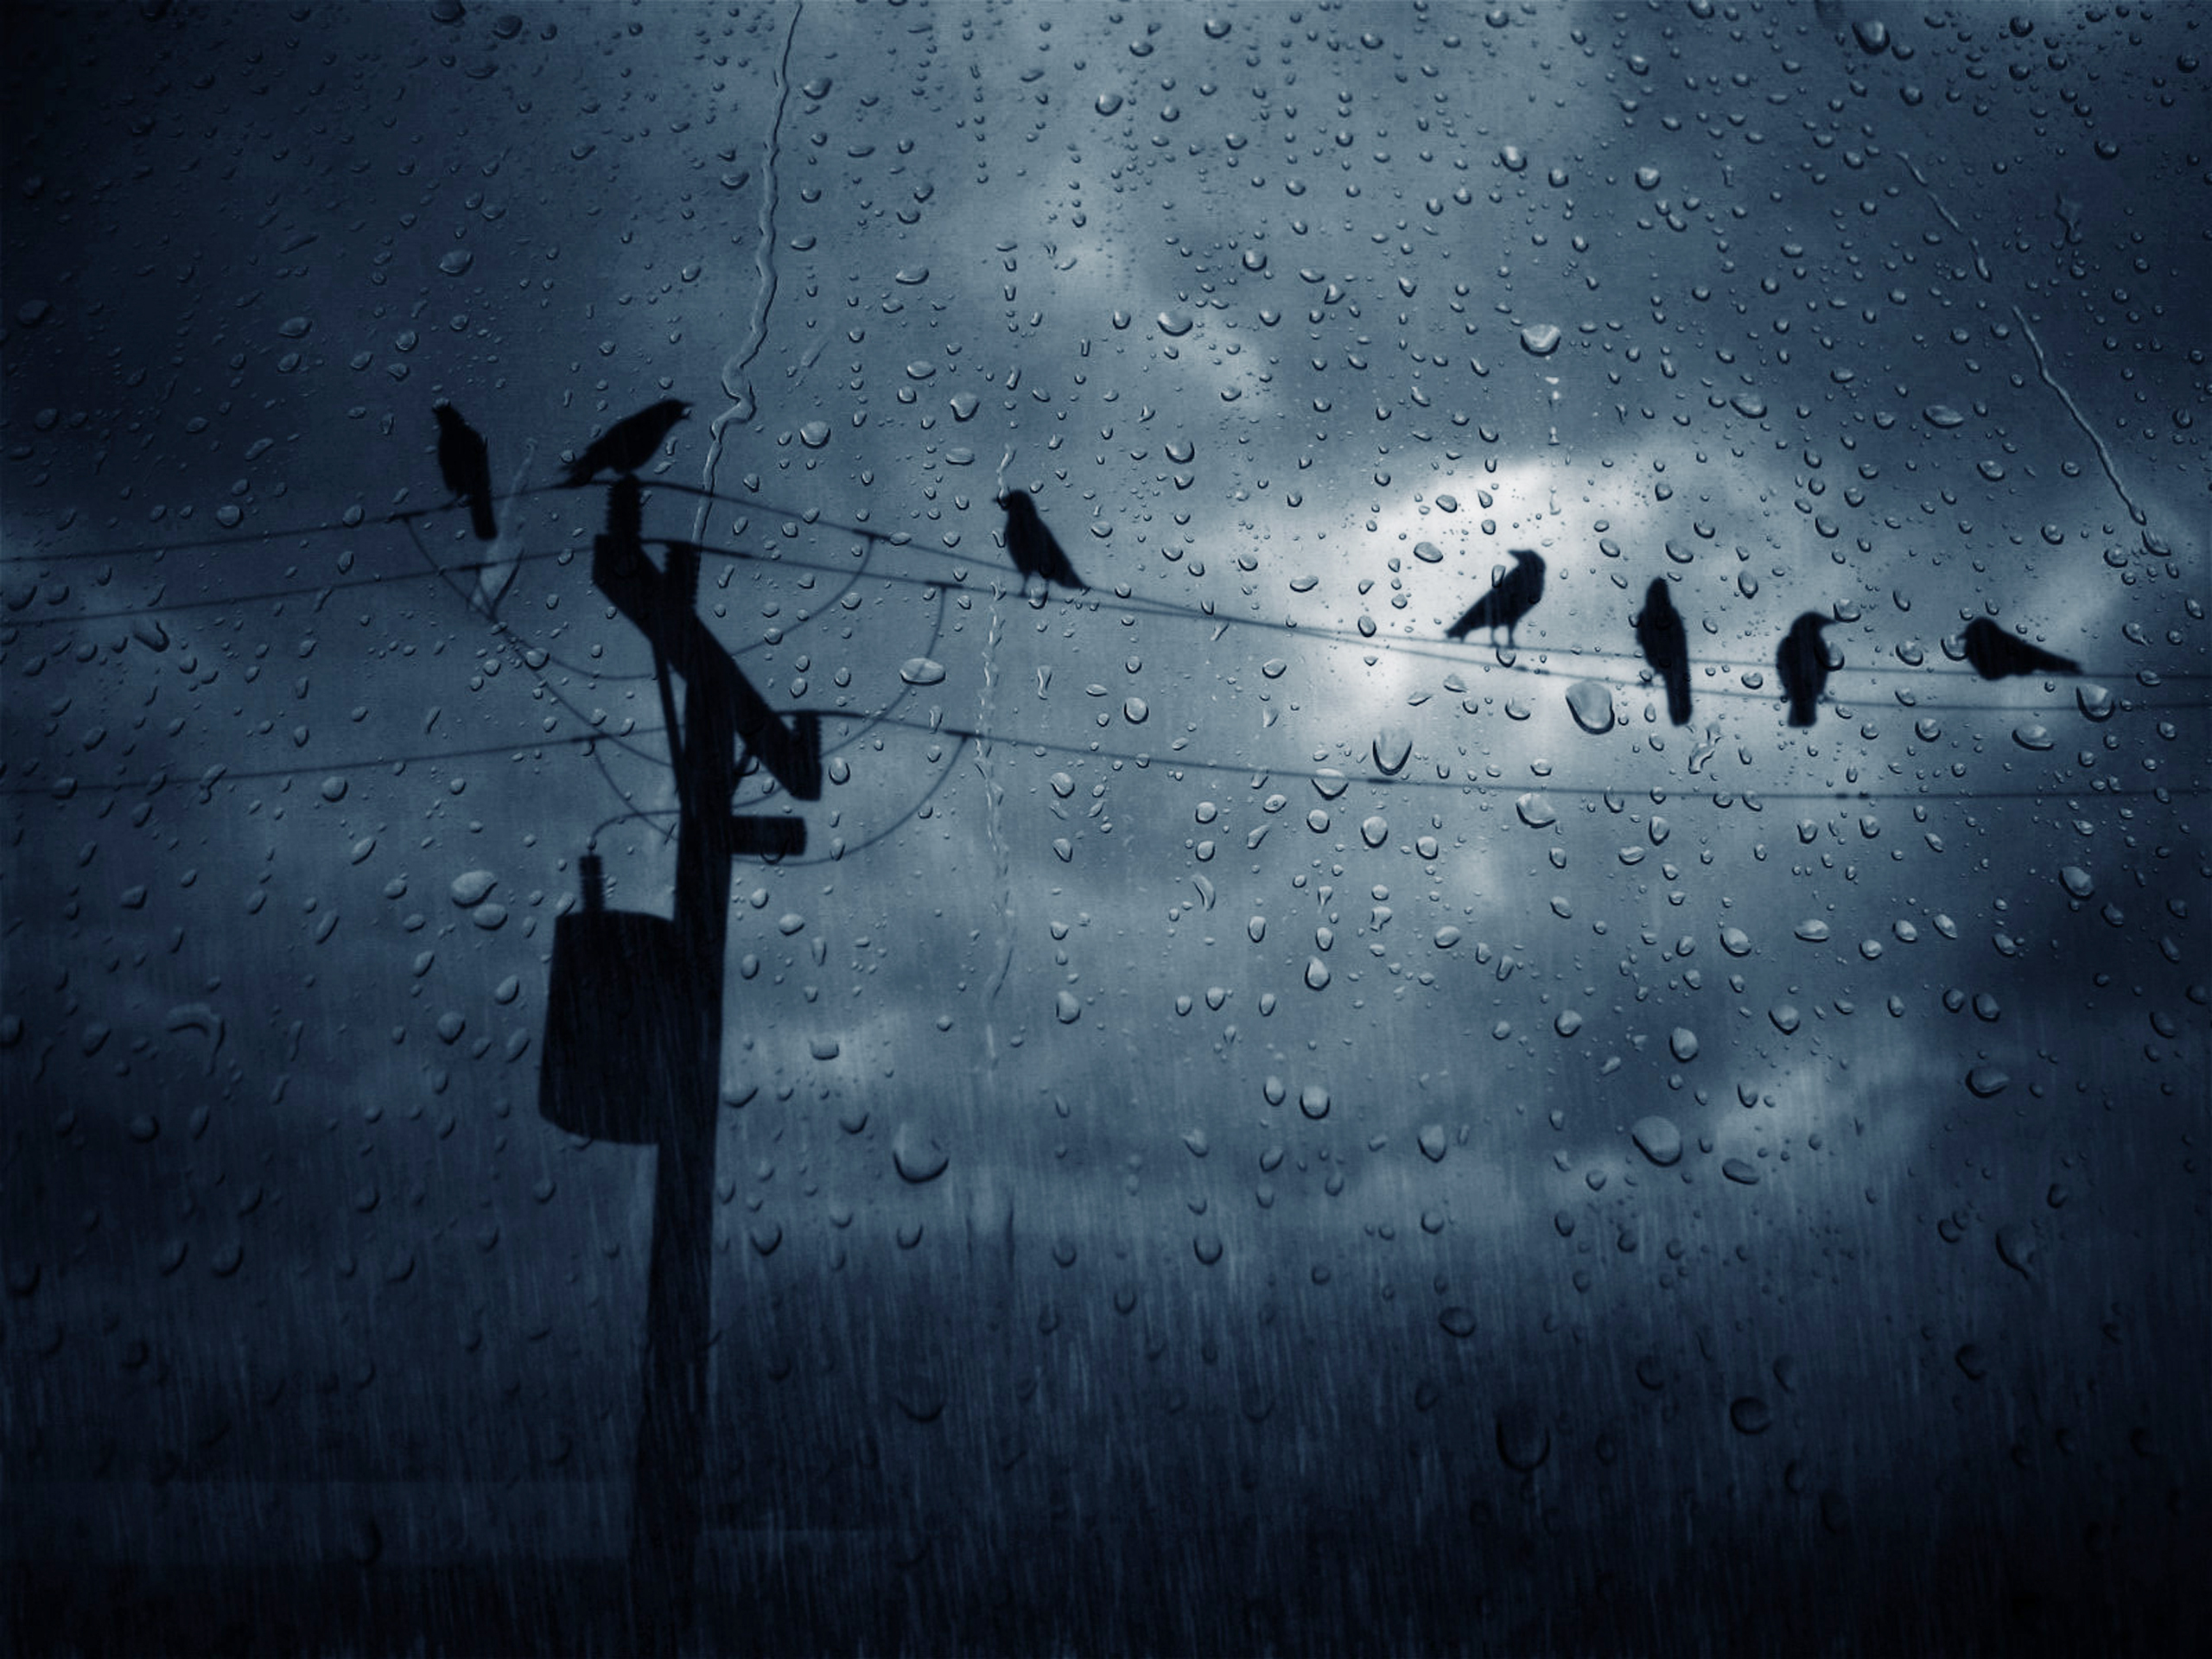 Rain and birds on the wire free desktop wallpapers for rain wallpapers voltagebd Image collections